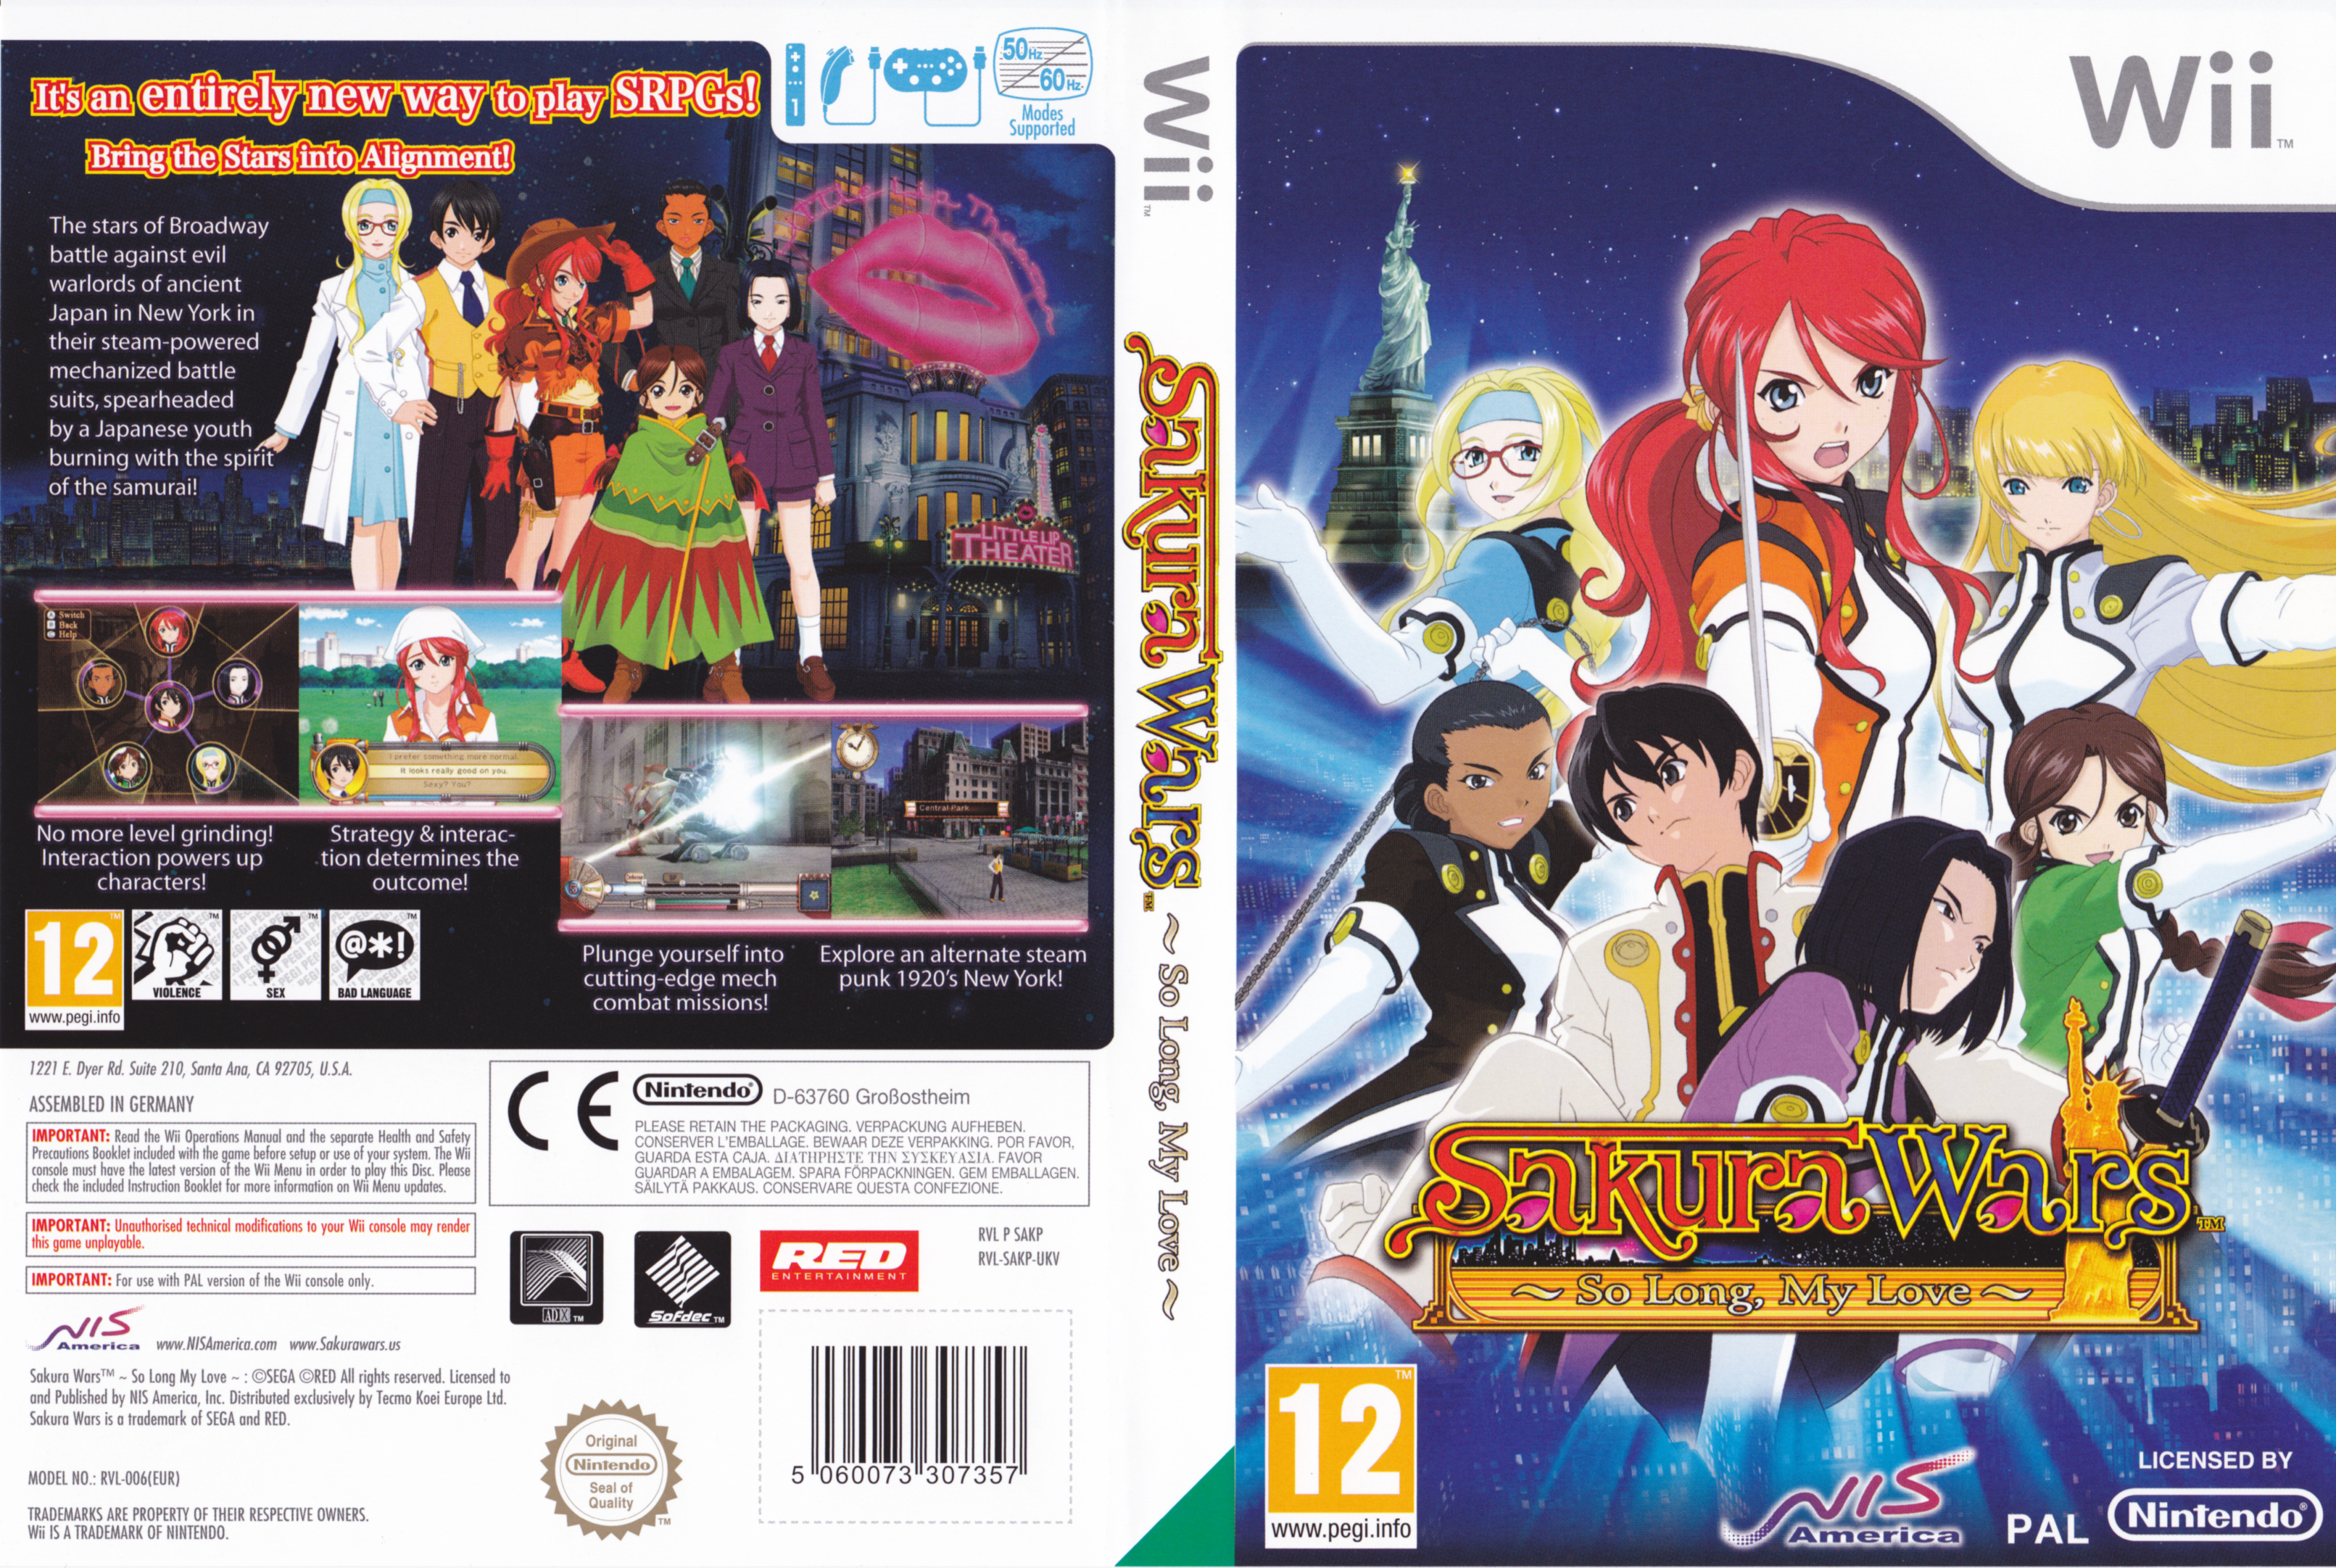 Sakura Wars 5 Wii pal